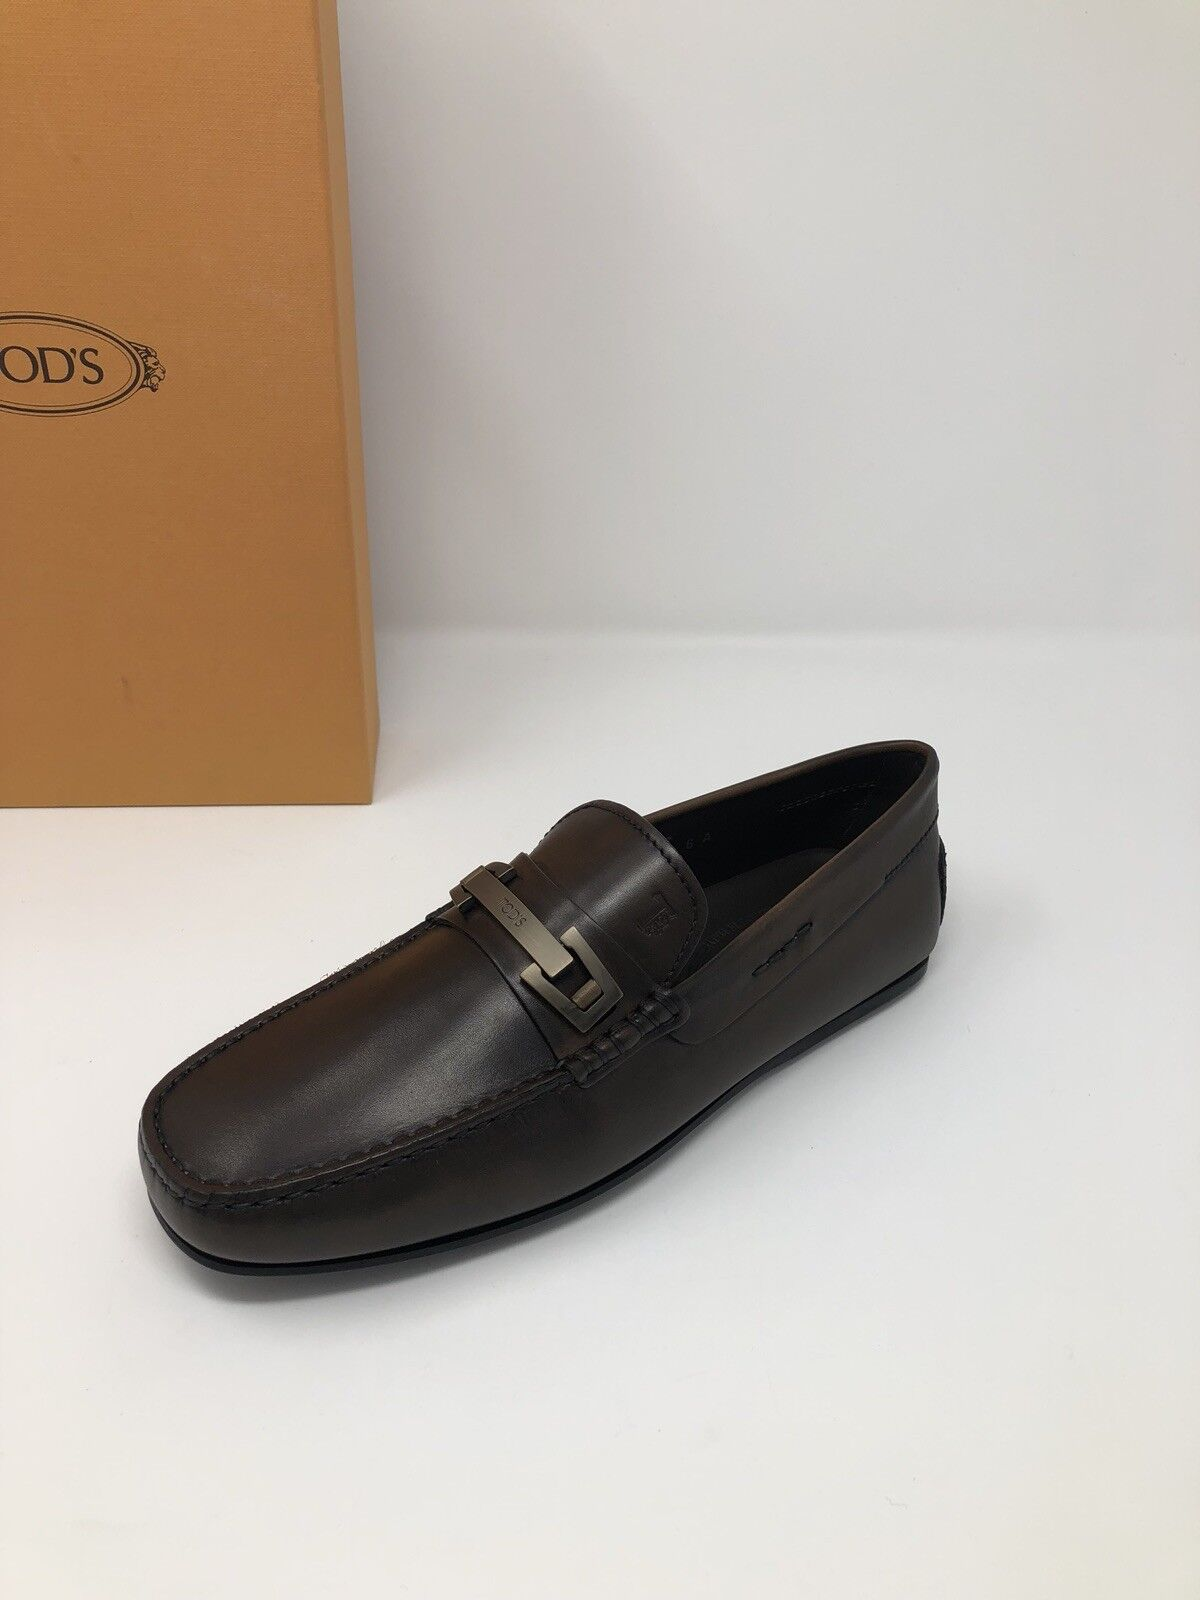 595 nuovo Tods Mens Dark Marronee sautope Gommino Loafers 7 US 6 EU